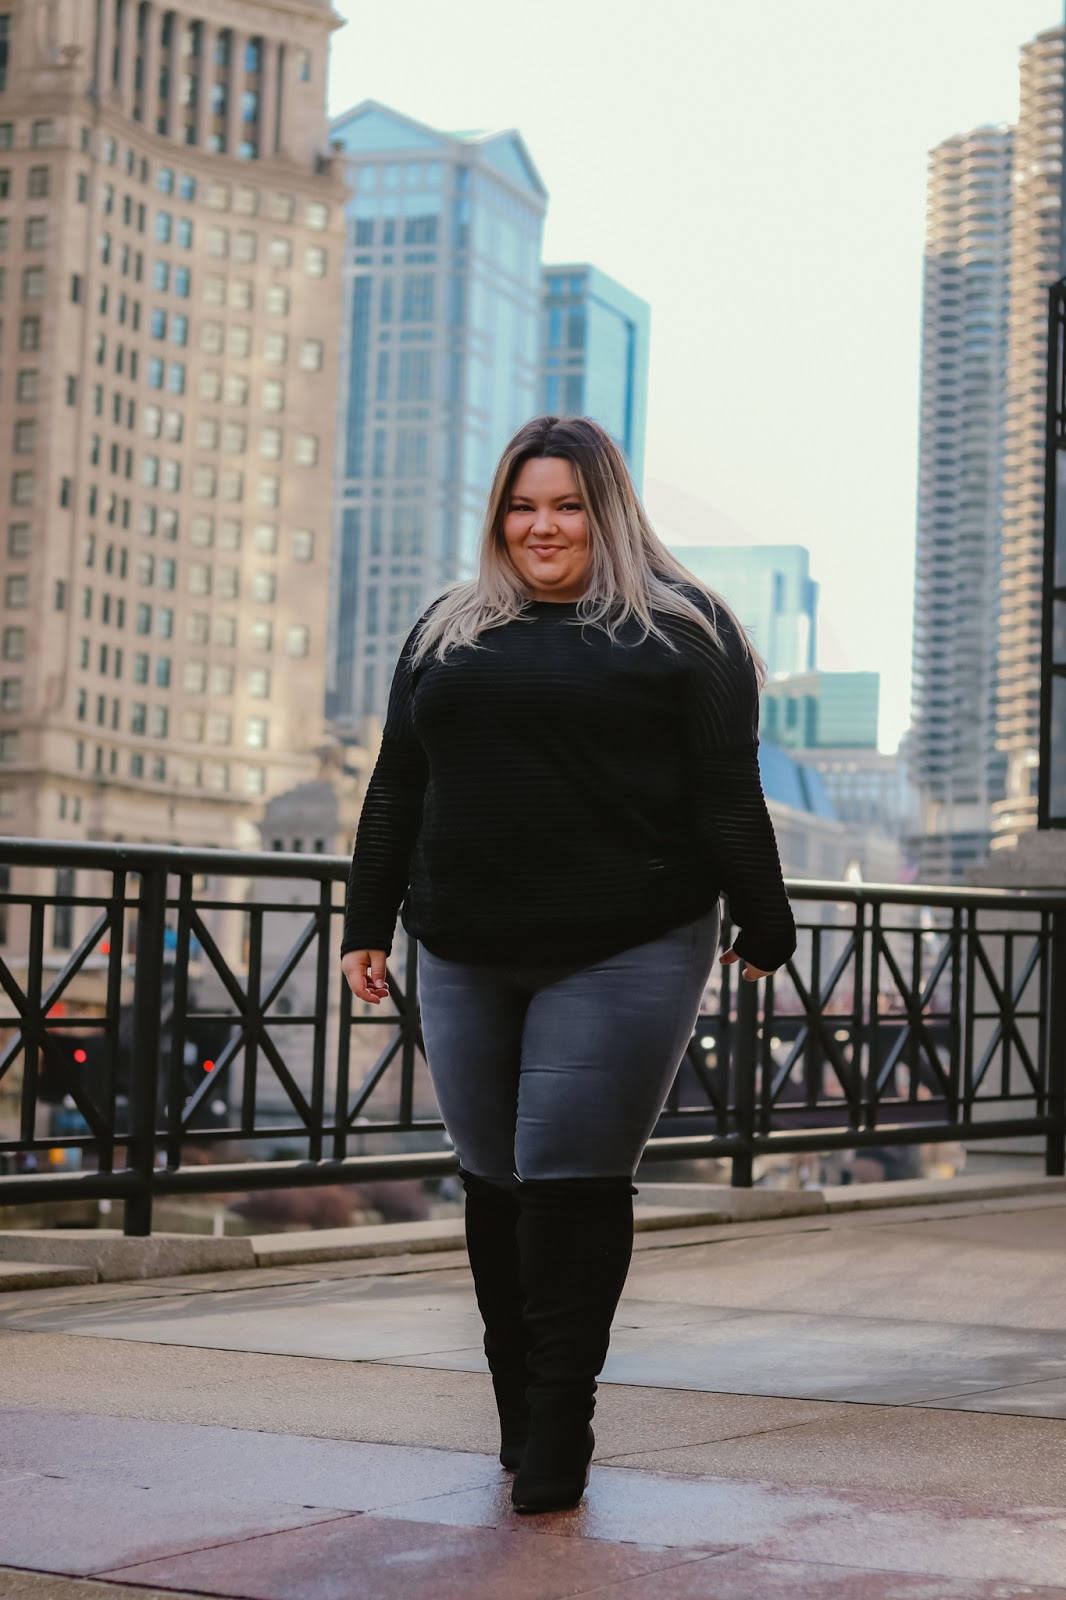 Chicago Plus Size Petite Fashion Blogger, influencer, YouTuber, and model Natalie Craig, of Natalie in the City, reviews Chic Soul's comfortable jeans and sweaters.